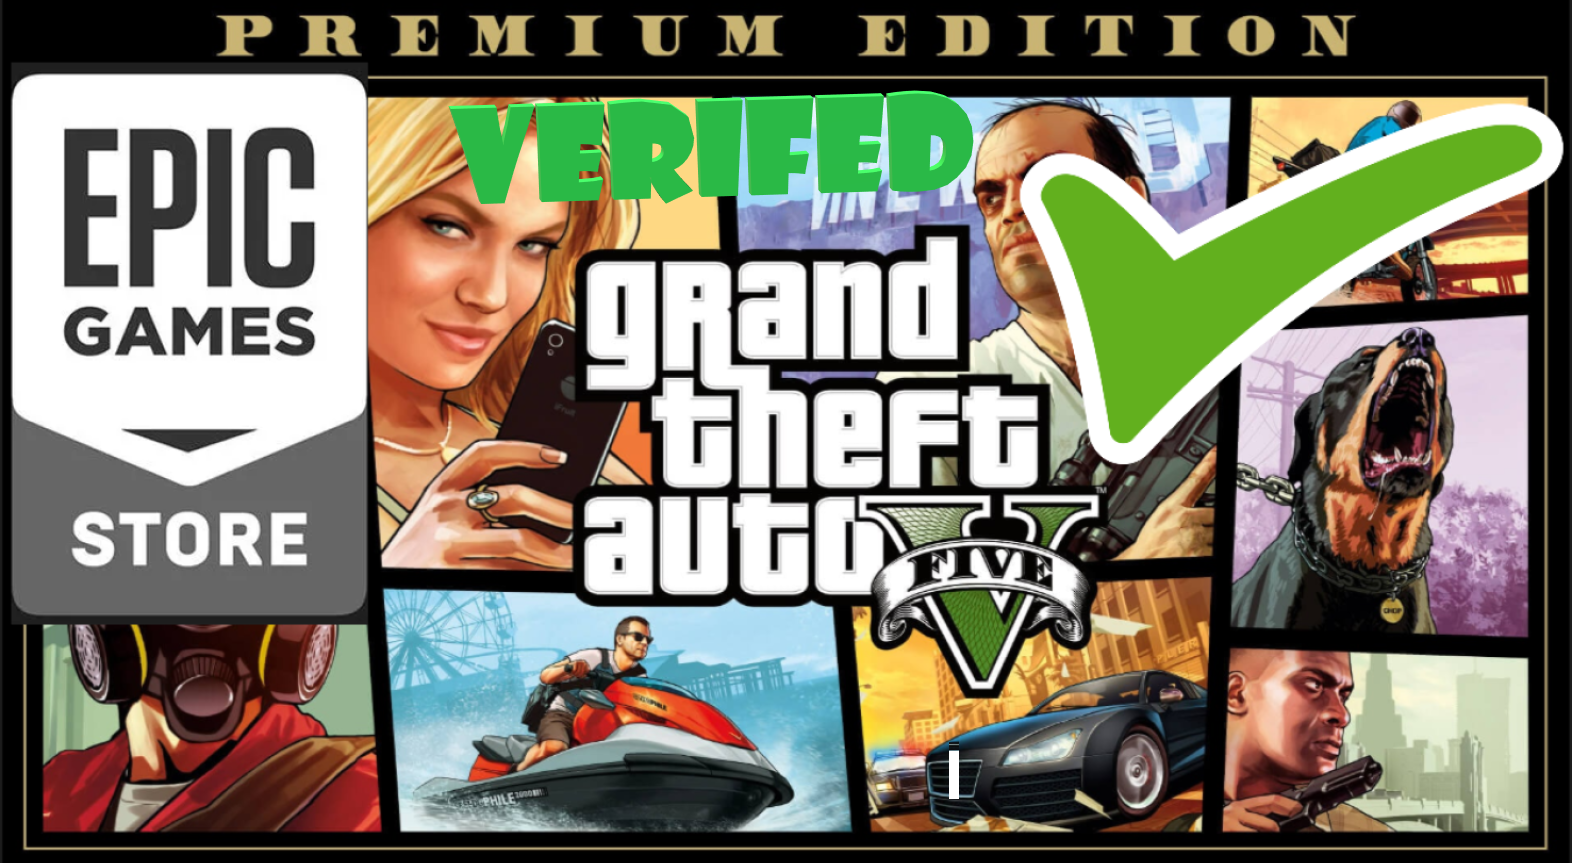 GTA 5 PREMIUM ONLINE EDITION (GRAND THEFT AUTO 5) PC GLOBAL (EPIC GAMES ACCOUNT)